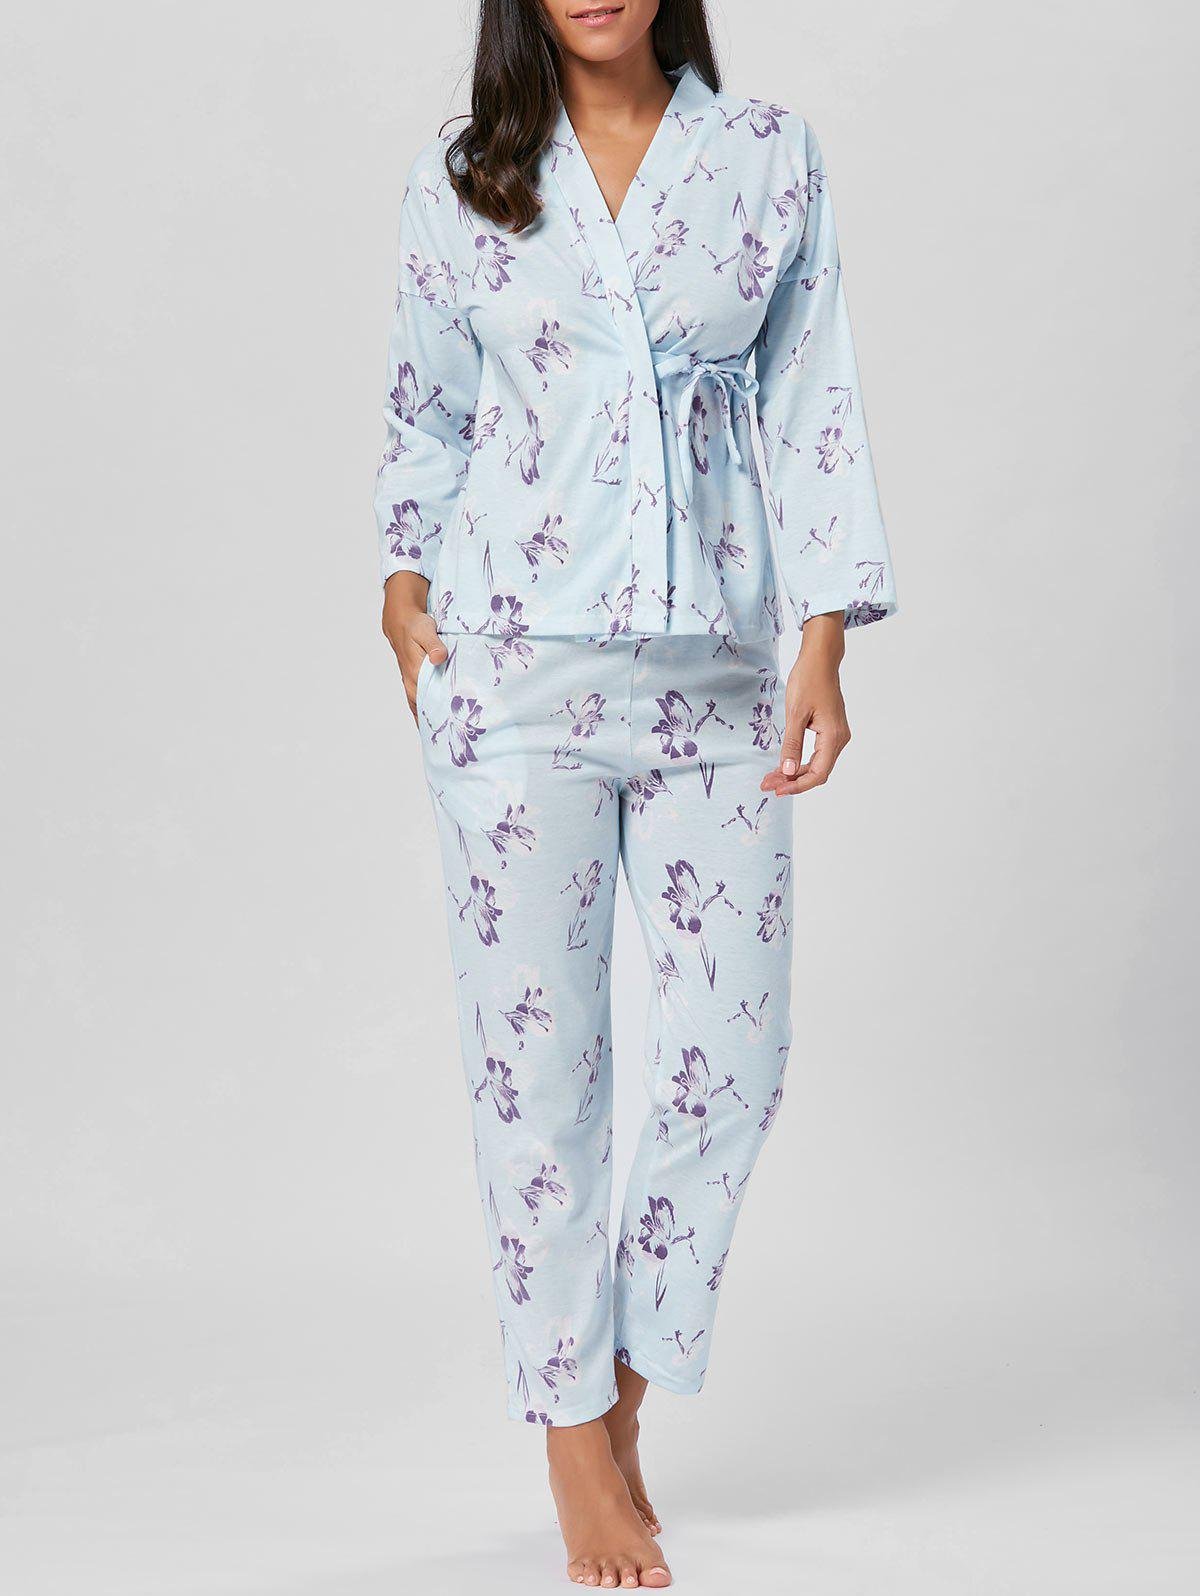 Cotton Wrap Floral Kimono PJ Set - LIGHT BLUE XL